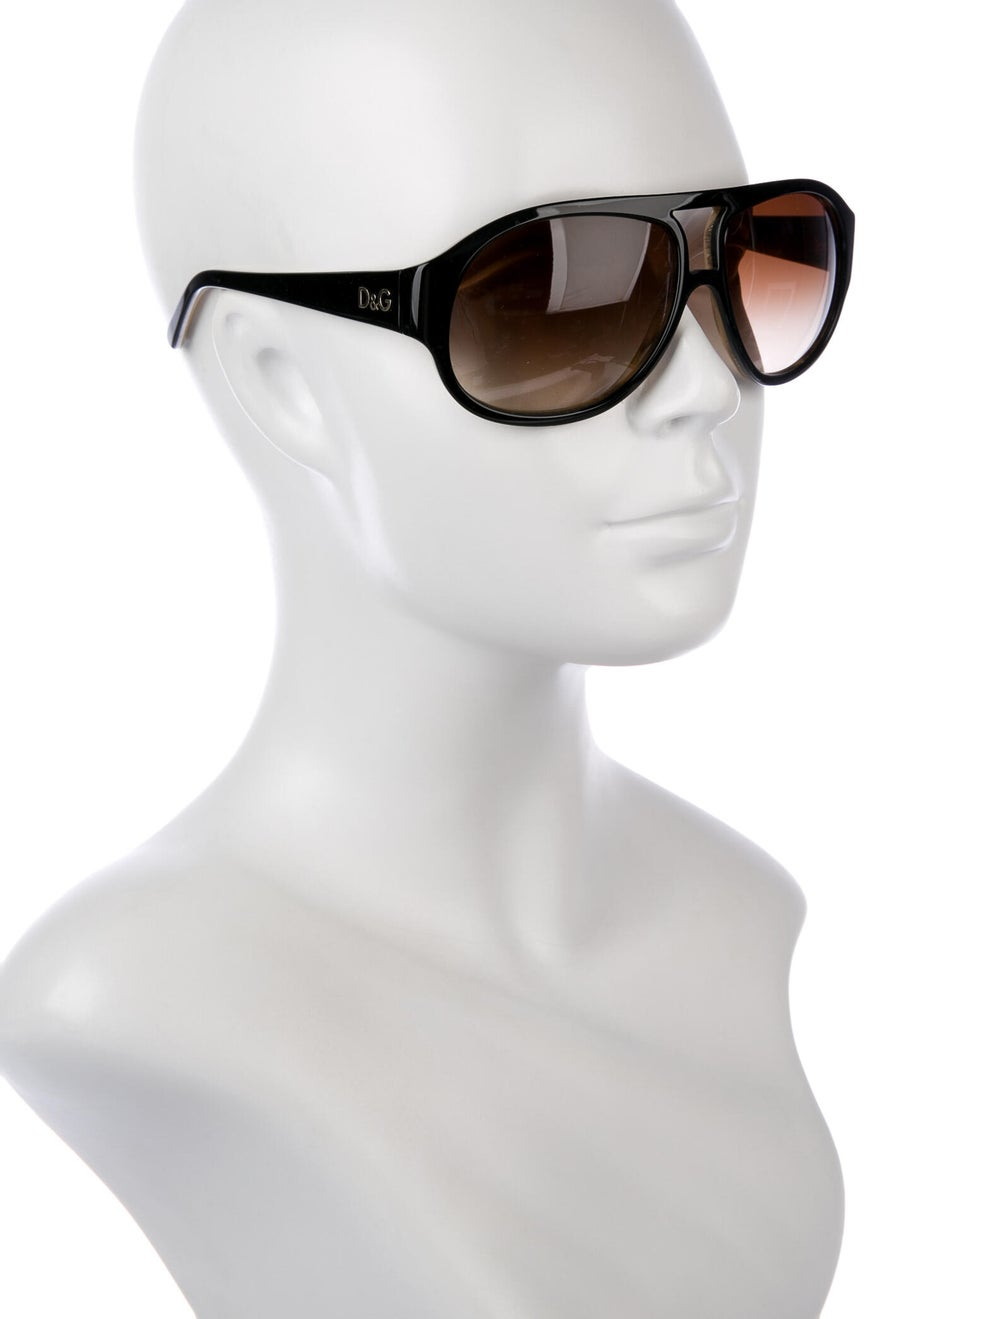 Dolce & Gabbana Gradient Aviator Sunglasses black - image 4